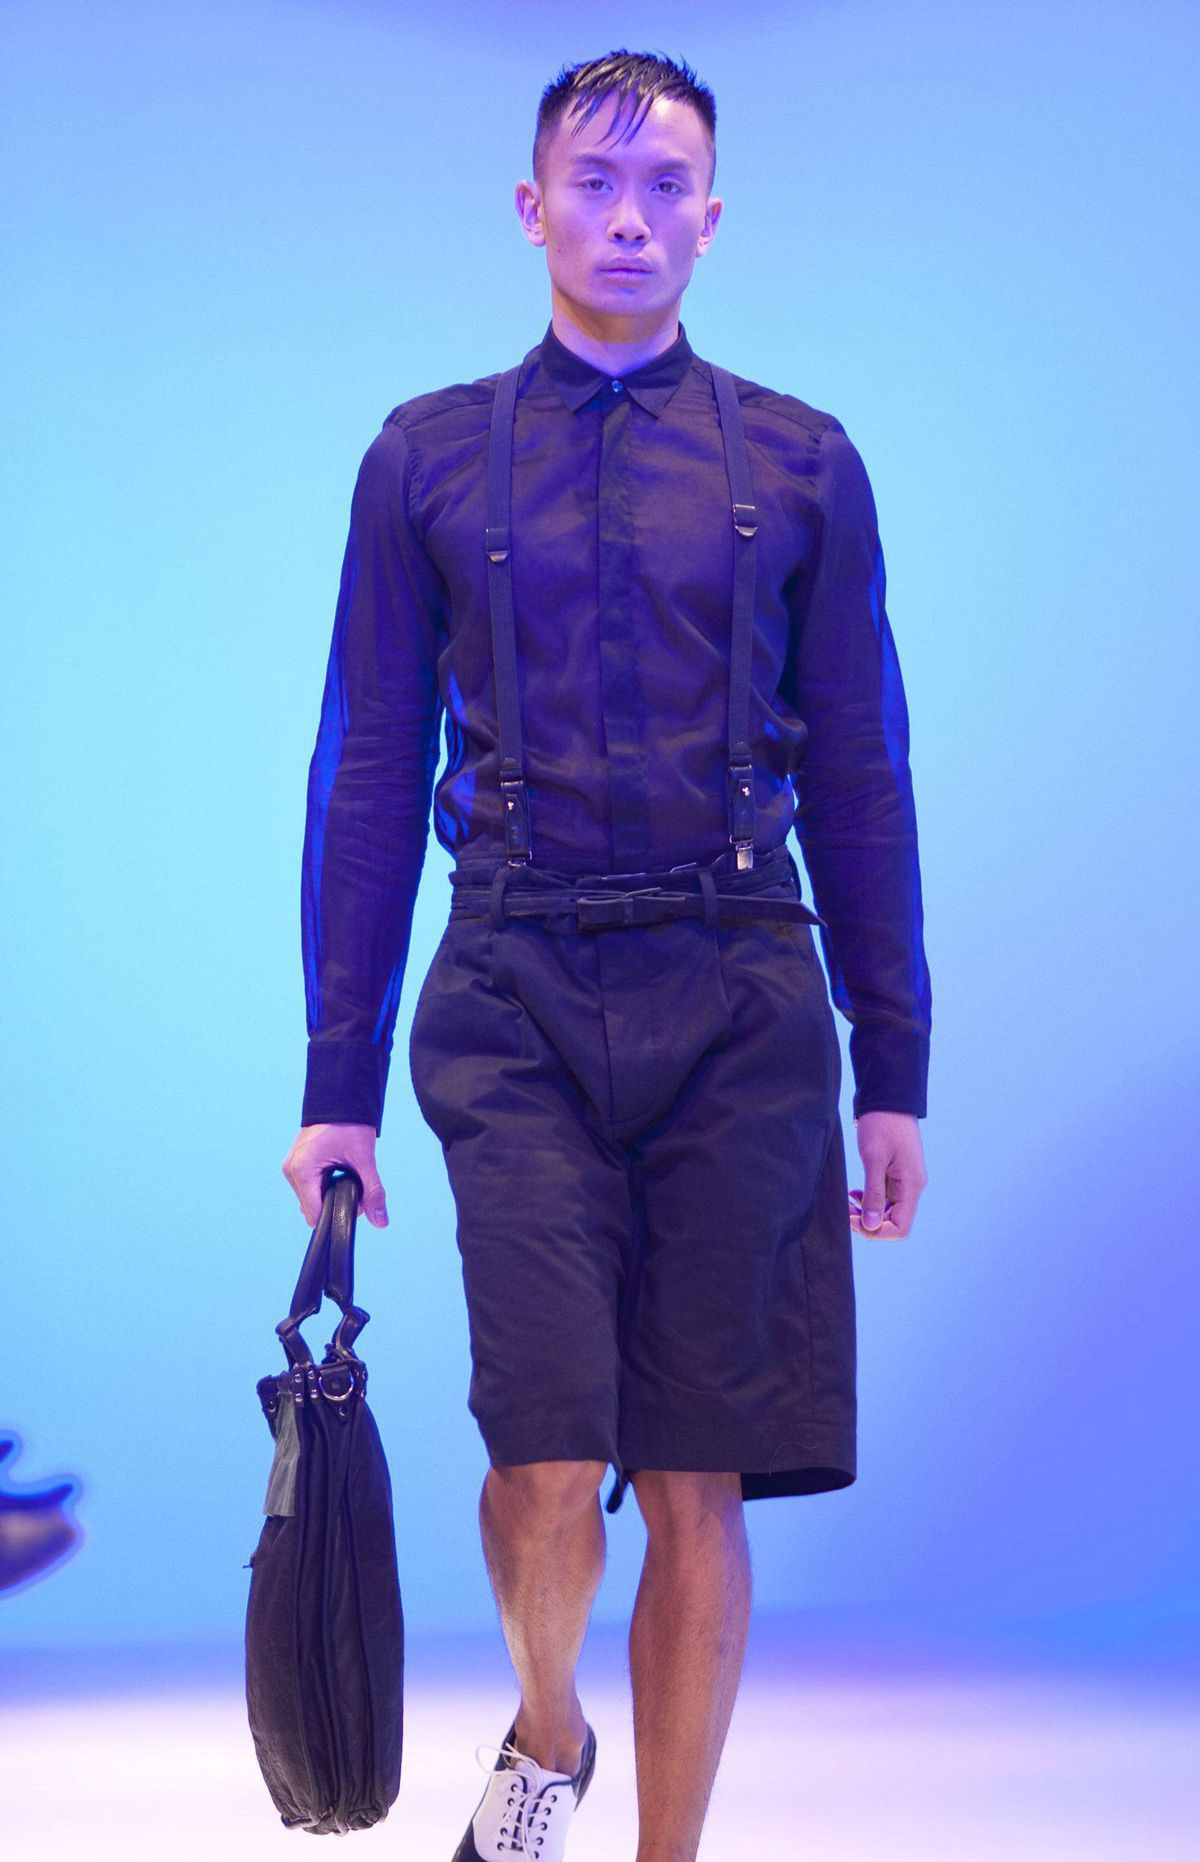 Fitted dress shirts with covered buttons paired with baggy shorts were cute enough, but most audience members were oohing and ahhing over the accessories, especially the leather handbags and satchels.